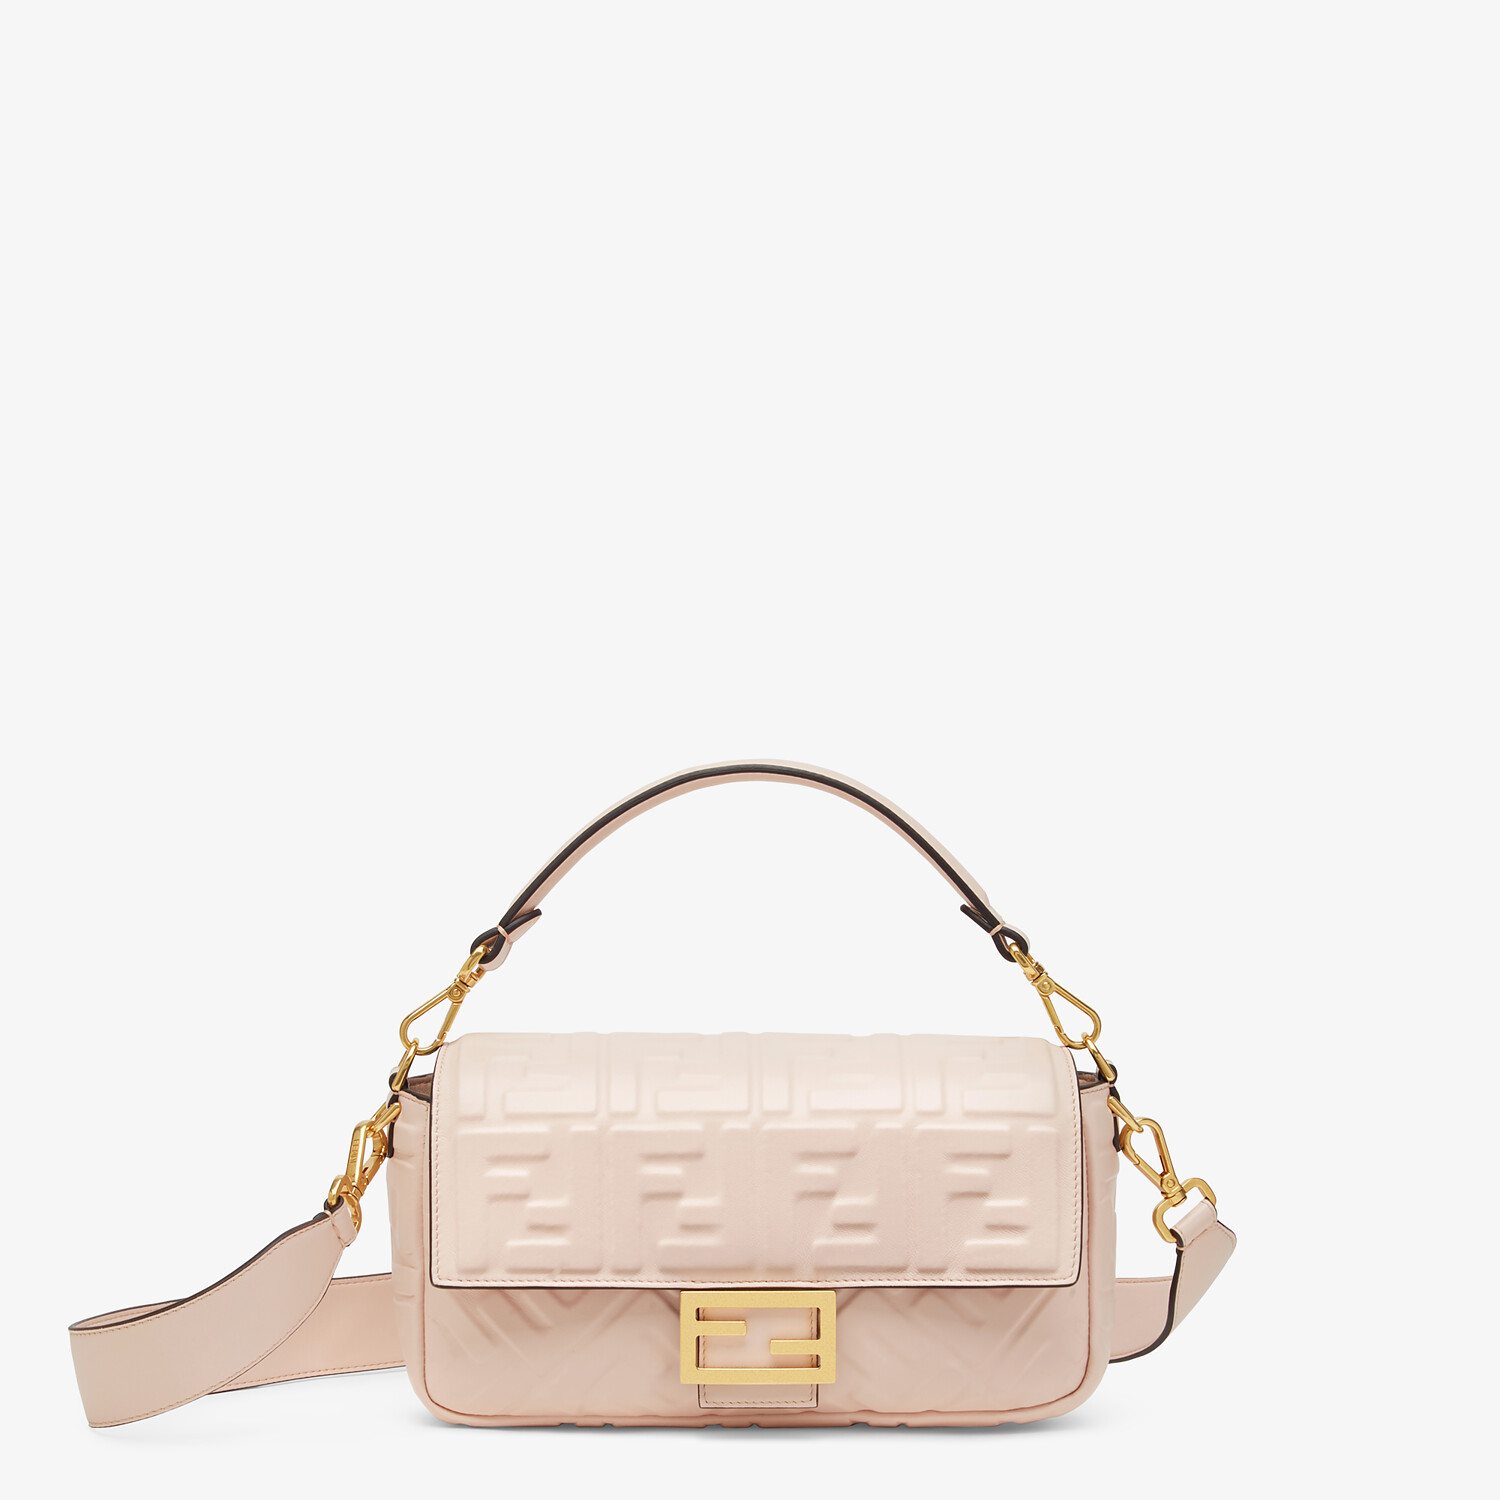 FENDI BAGUETTE - Pink nappa leather FF bag - view 1 detail